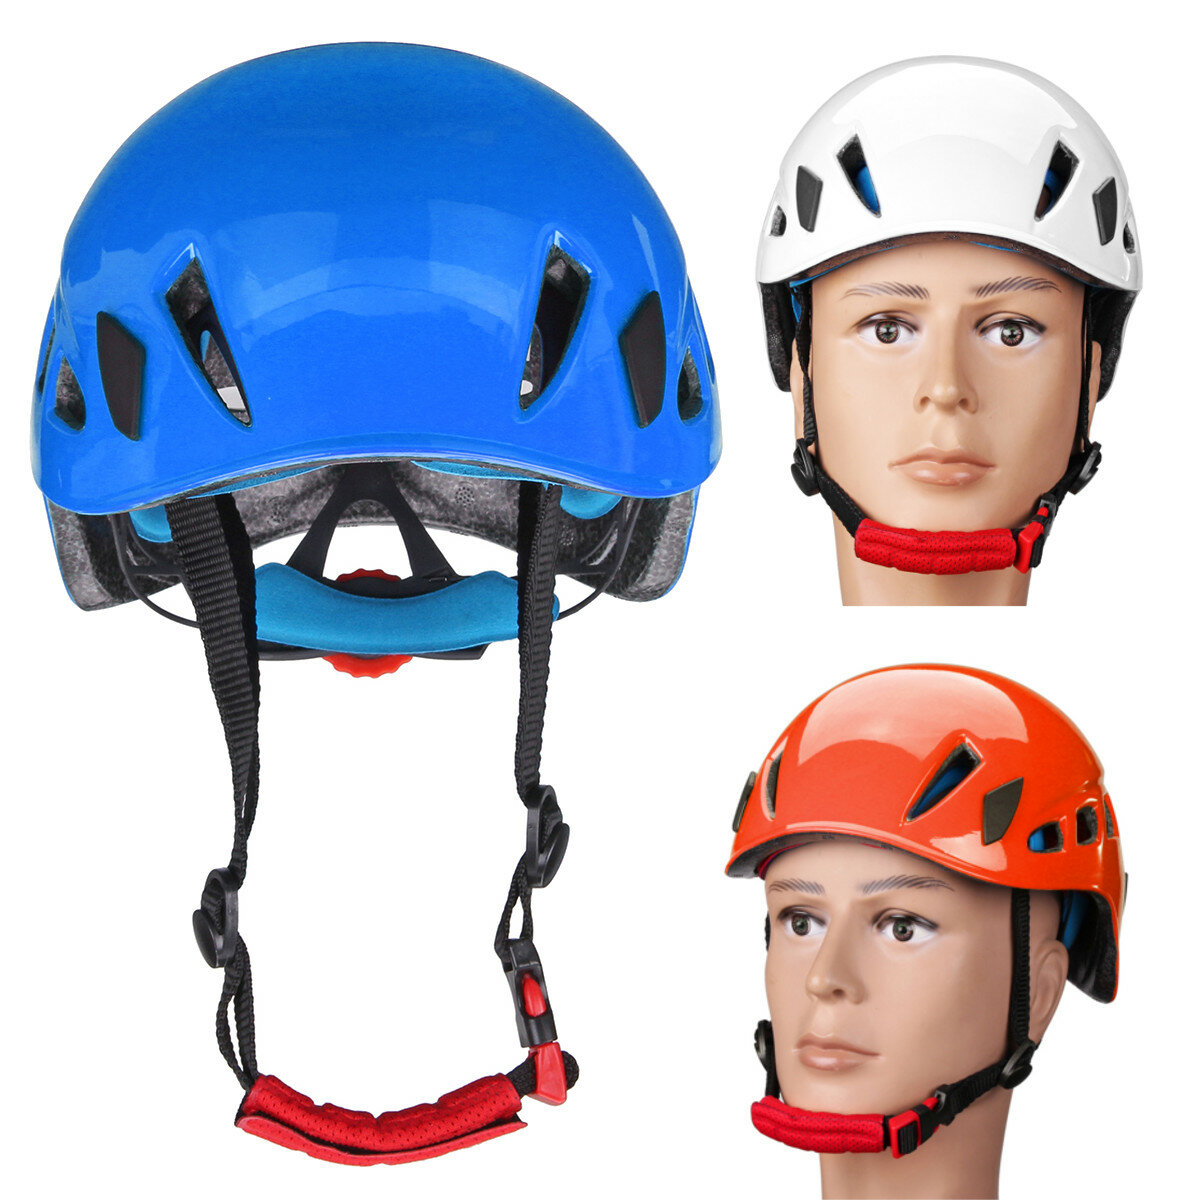 58-62 cm EPS Rock Climbing Safety Helmet Scaffolding Construction Rescue Security Hat Protection